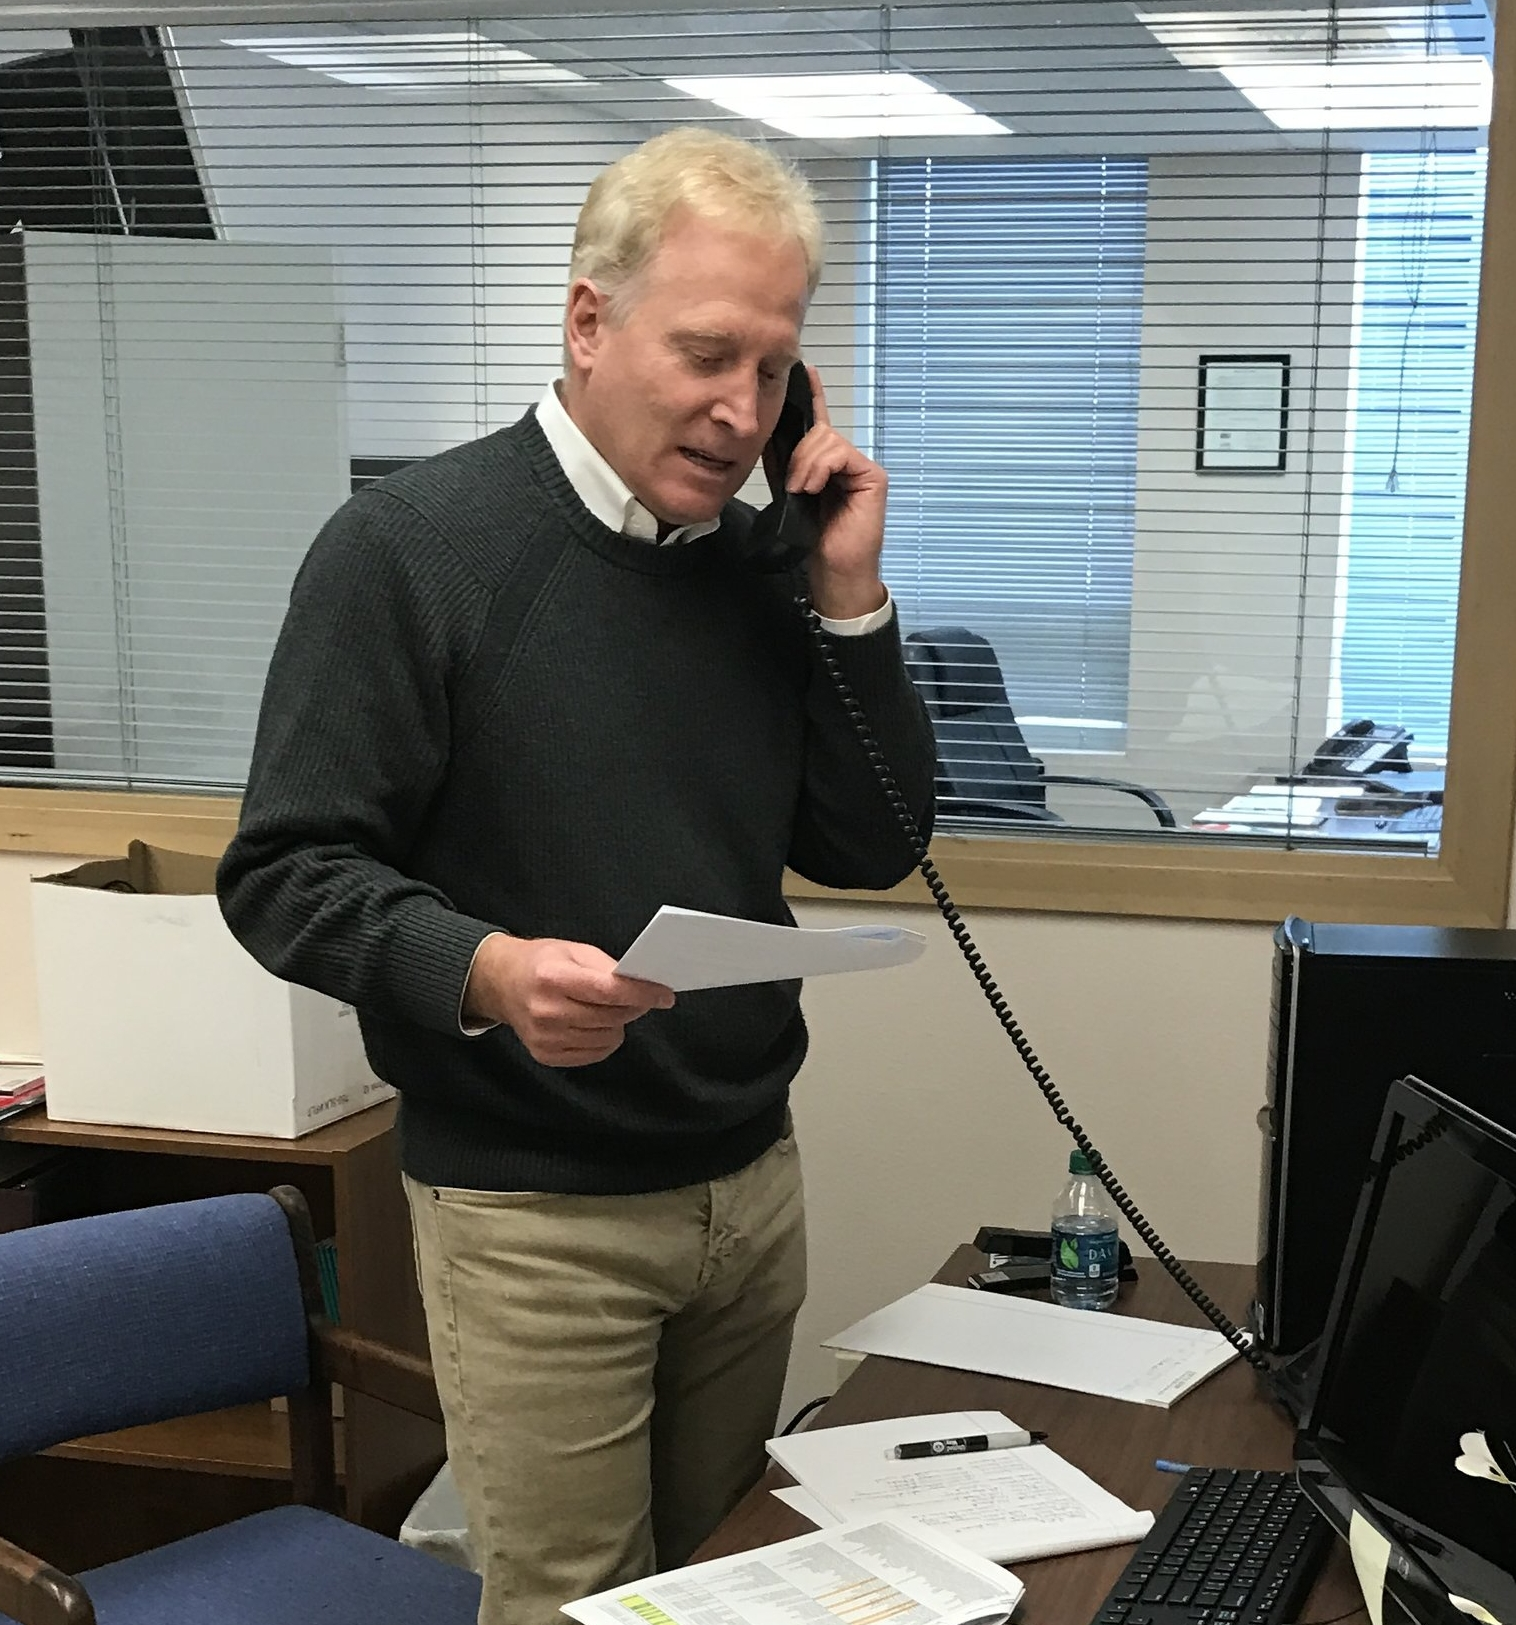 Jim Wilkinson making calls for the United Way